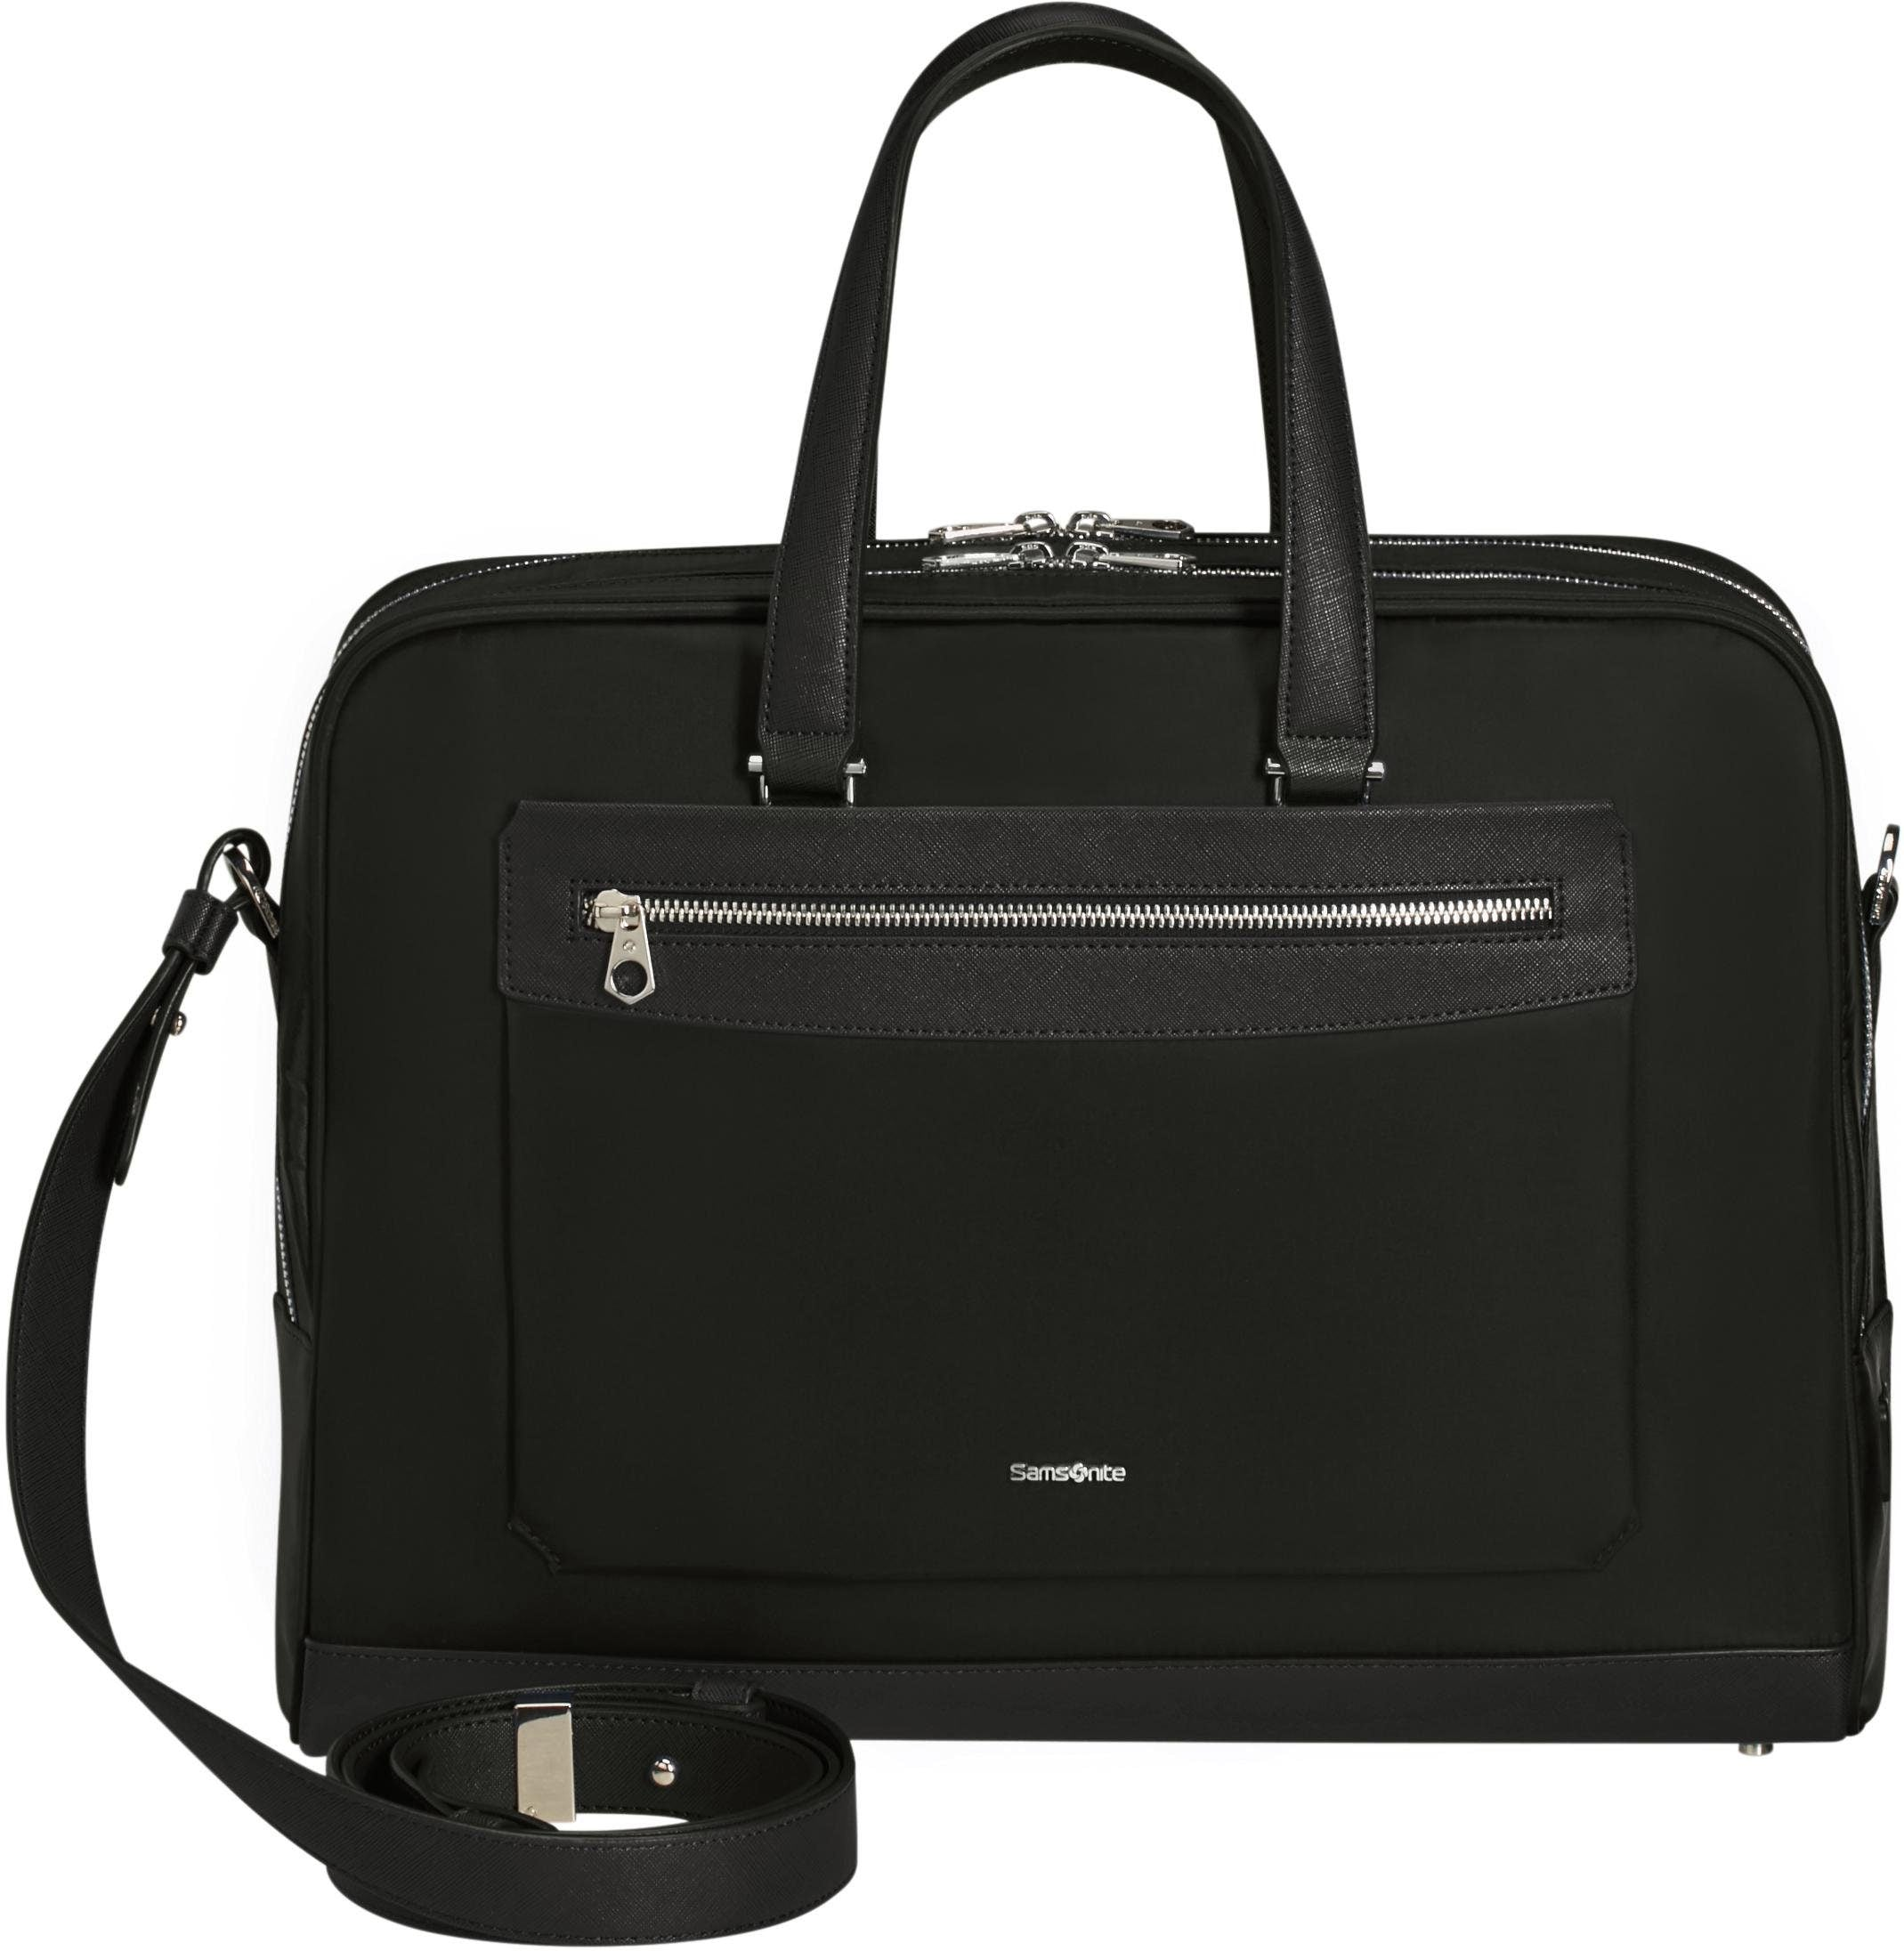 samsonite -  Businesstasche Zalia 2.0, black